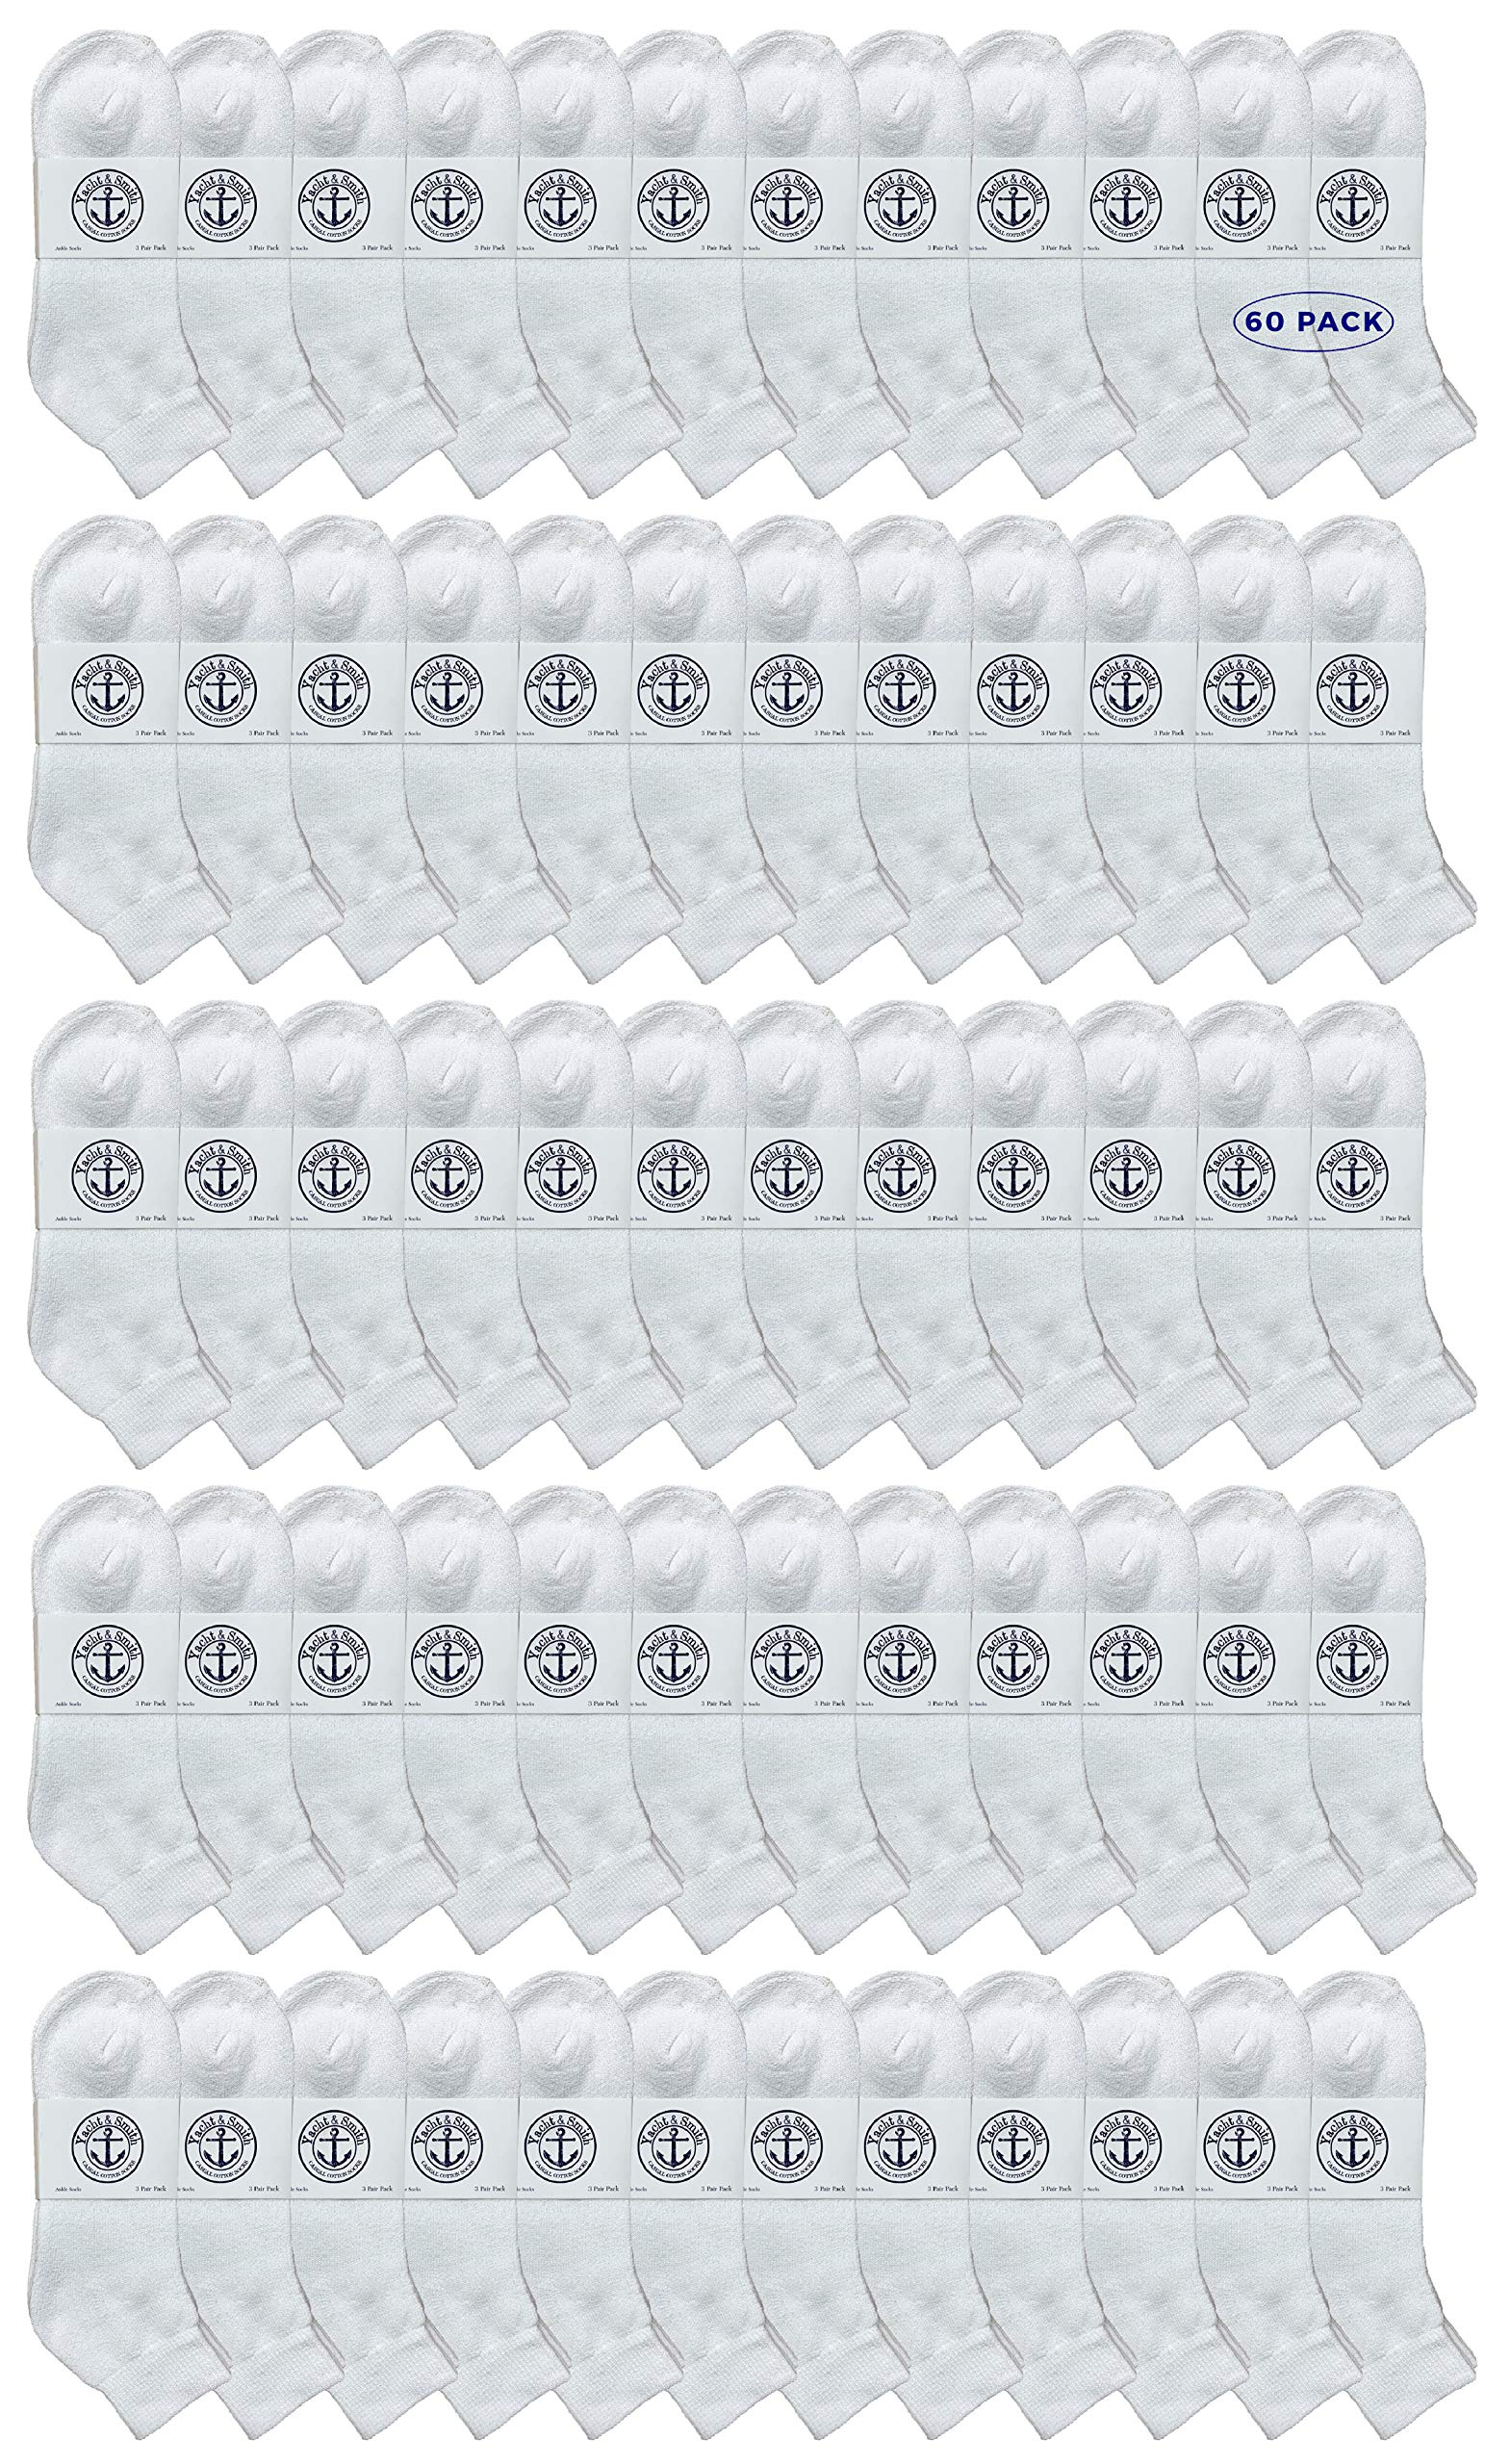 Yacht & Smith Wholeasle Kids Mid Ankle Socks, Cotton Bulk Sport Ankle Socks - 6-8 - White - 60 Packs by YACHT & SMITH